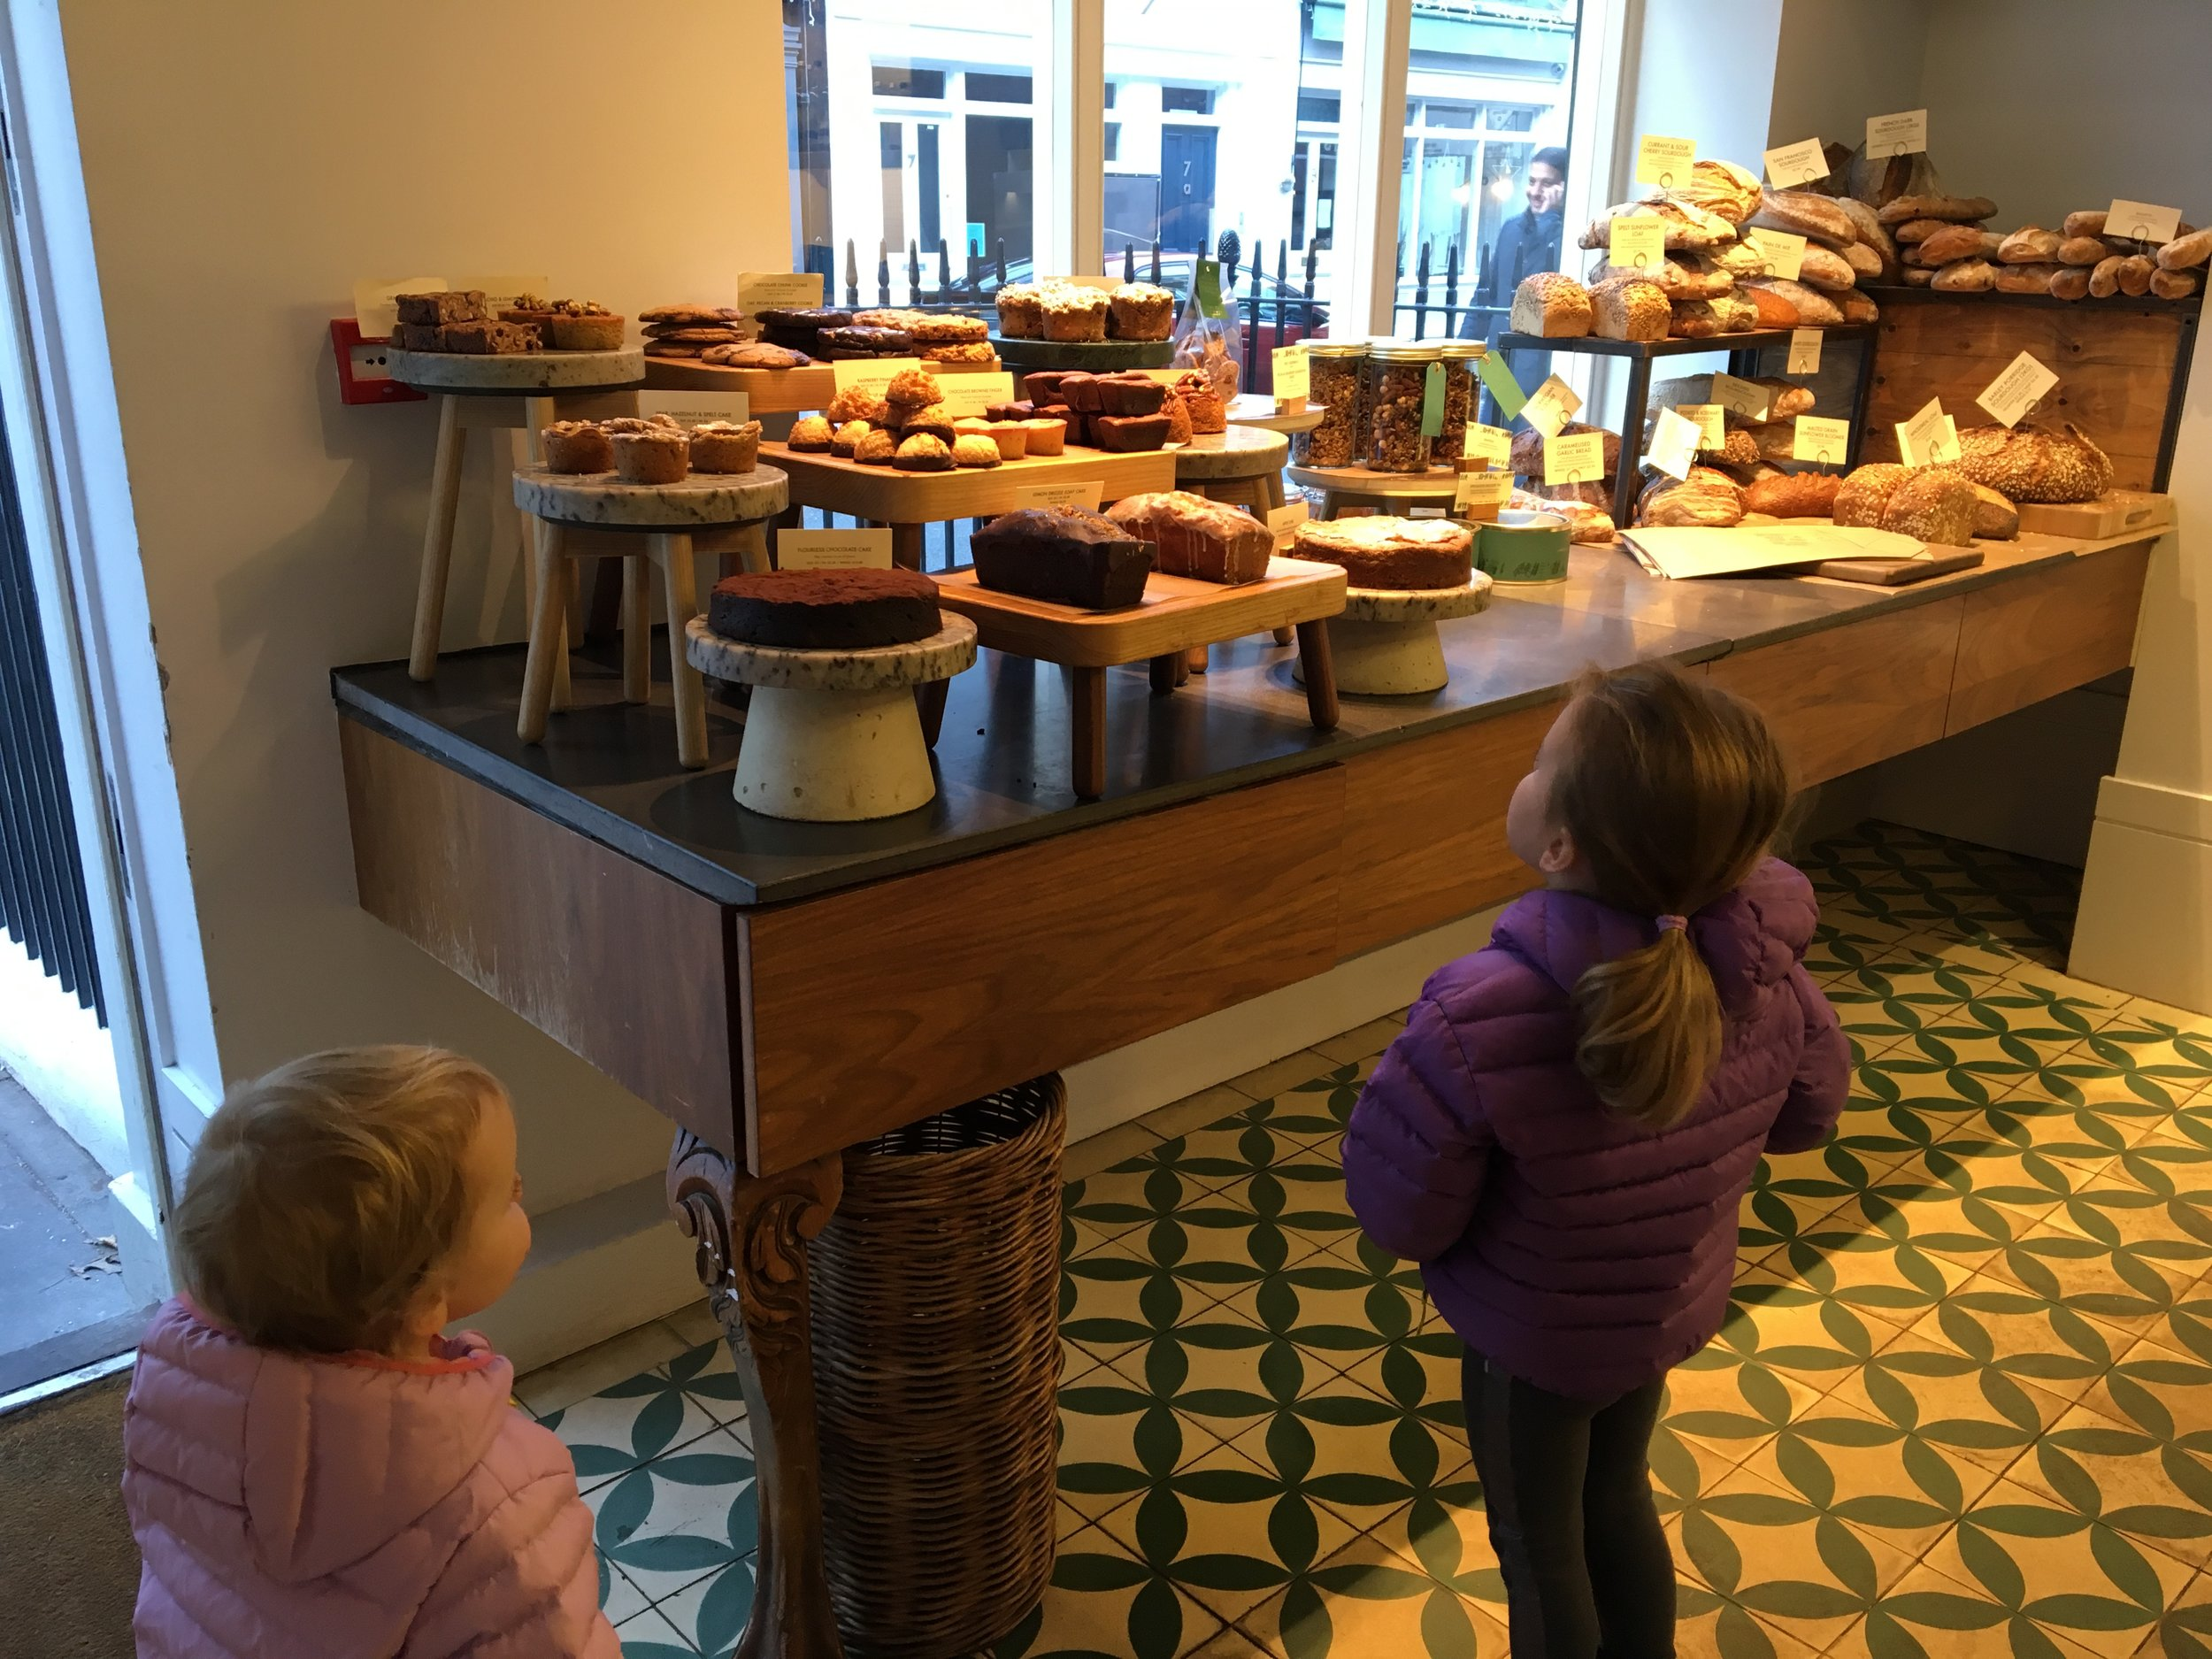 Luckily these girls had room for a few baked goods upon arrival in London.